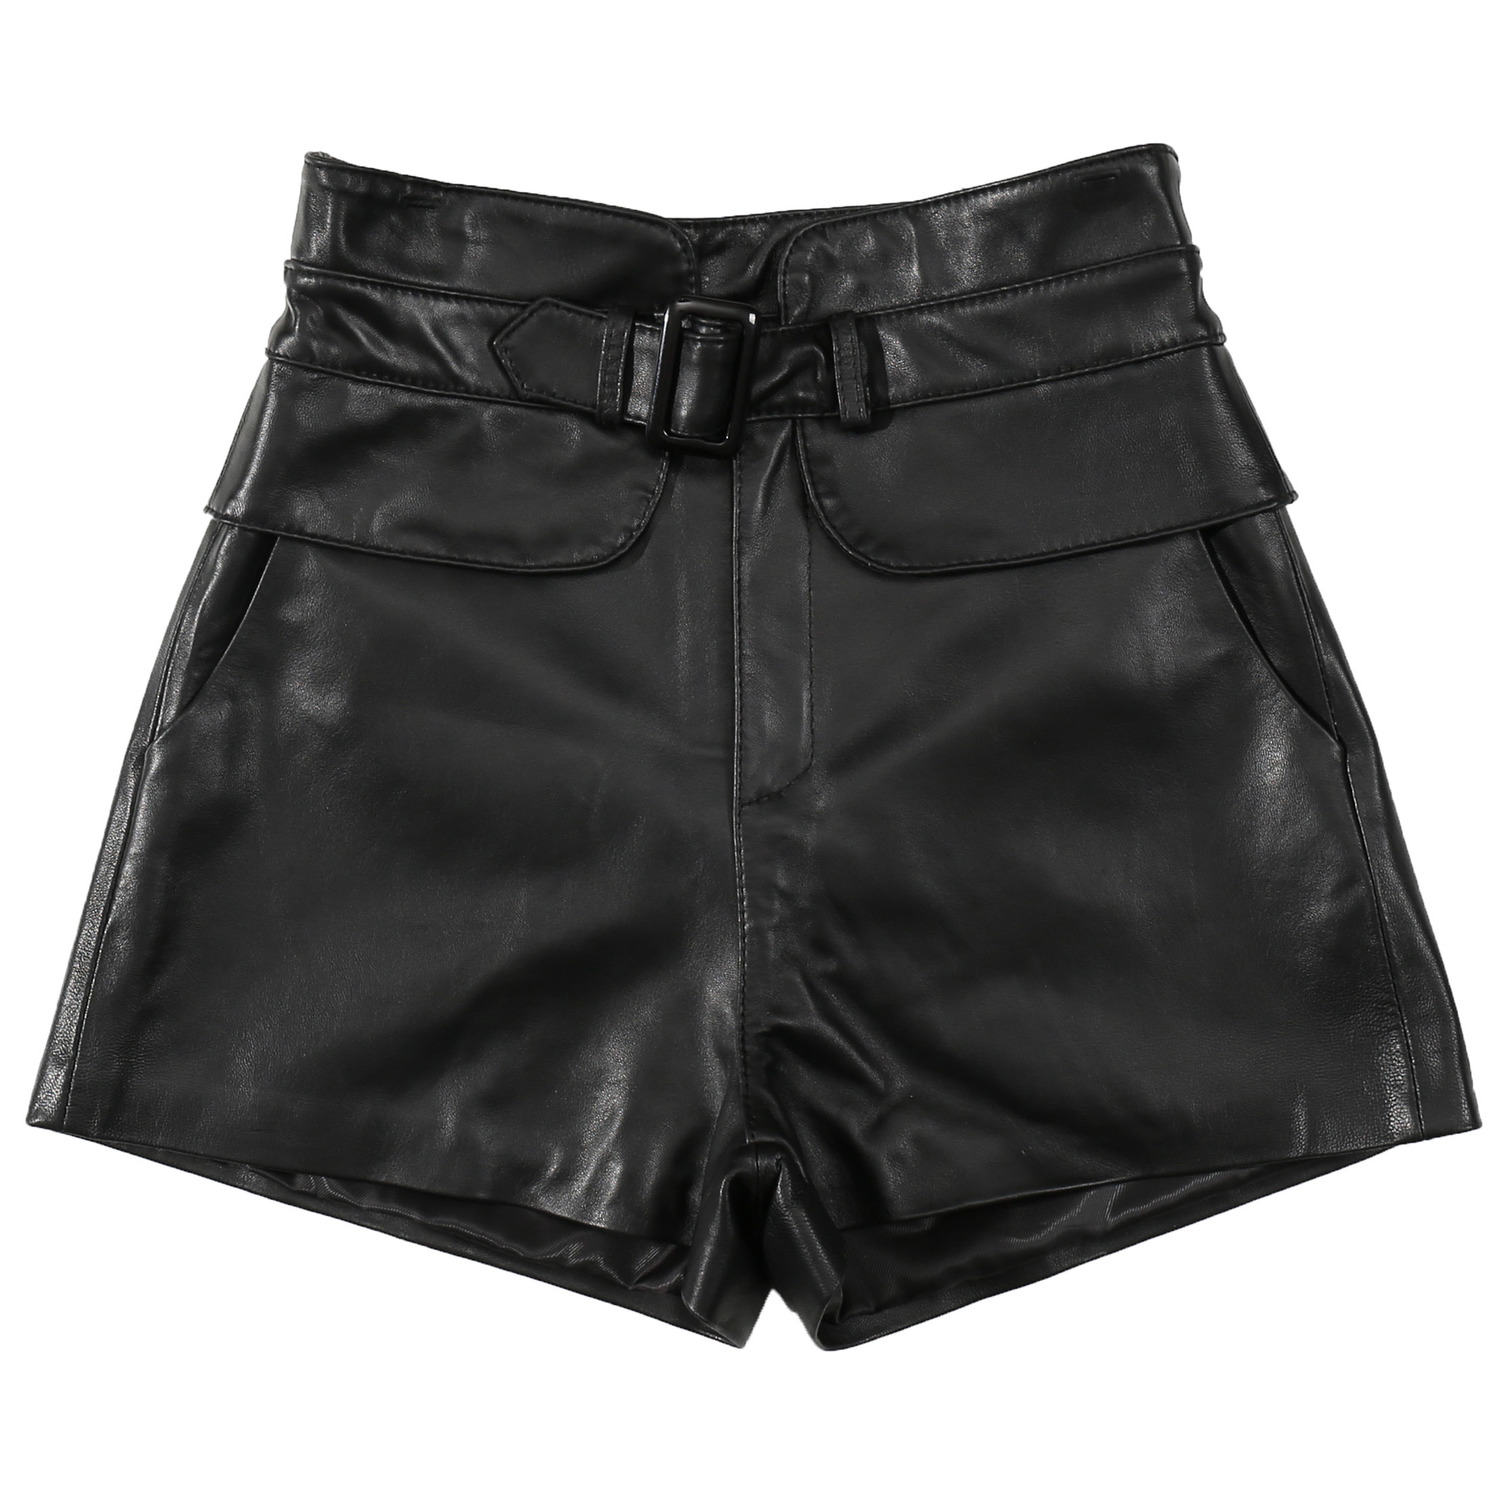 High Waisted Shorts For Women Genuine Leather Sexy 2020 Autumn Winter Casual Slim Fit Korean Style Female Mini Leather Shorts